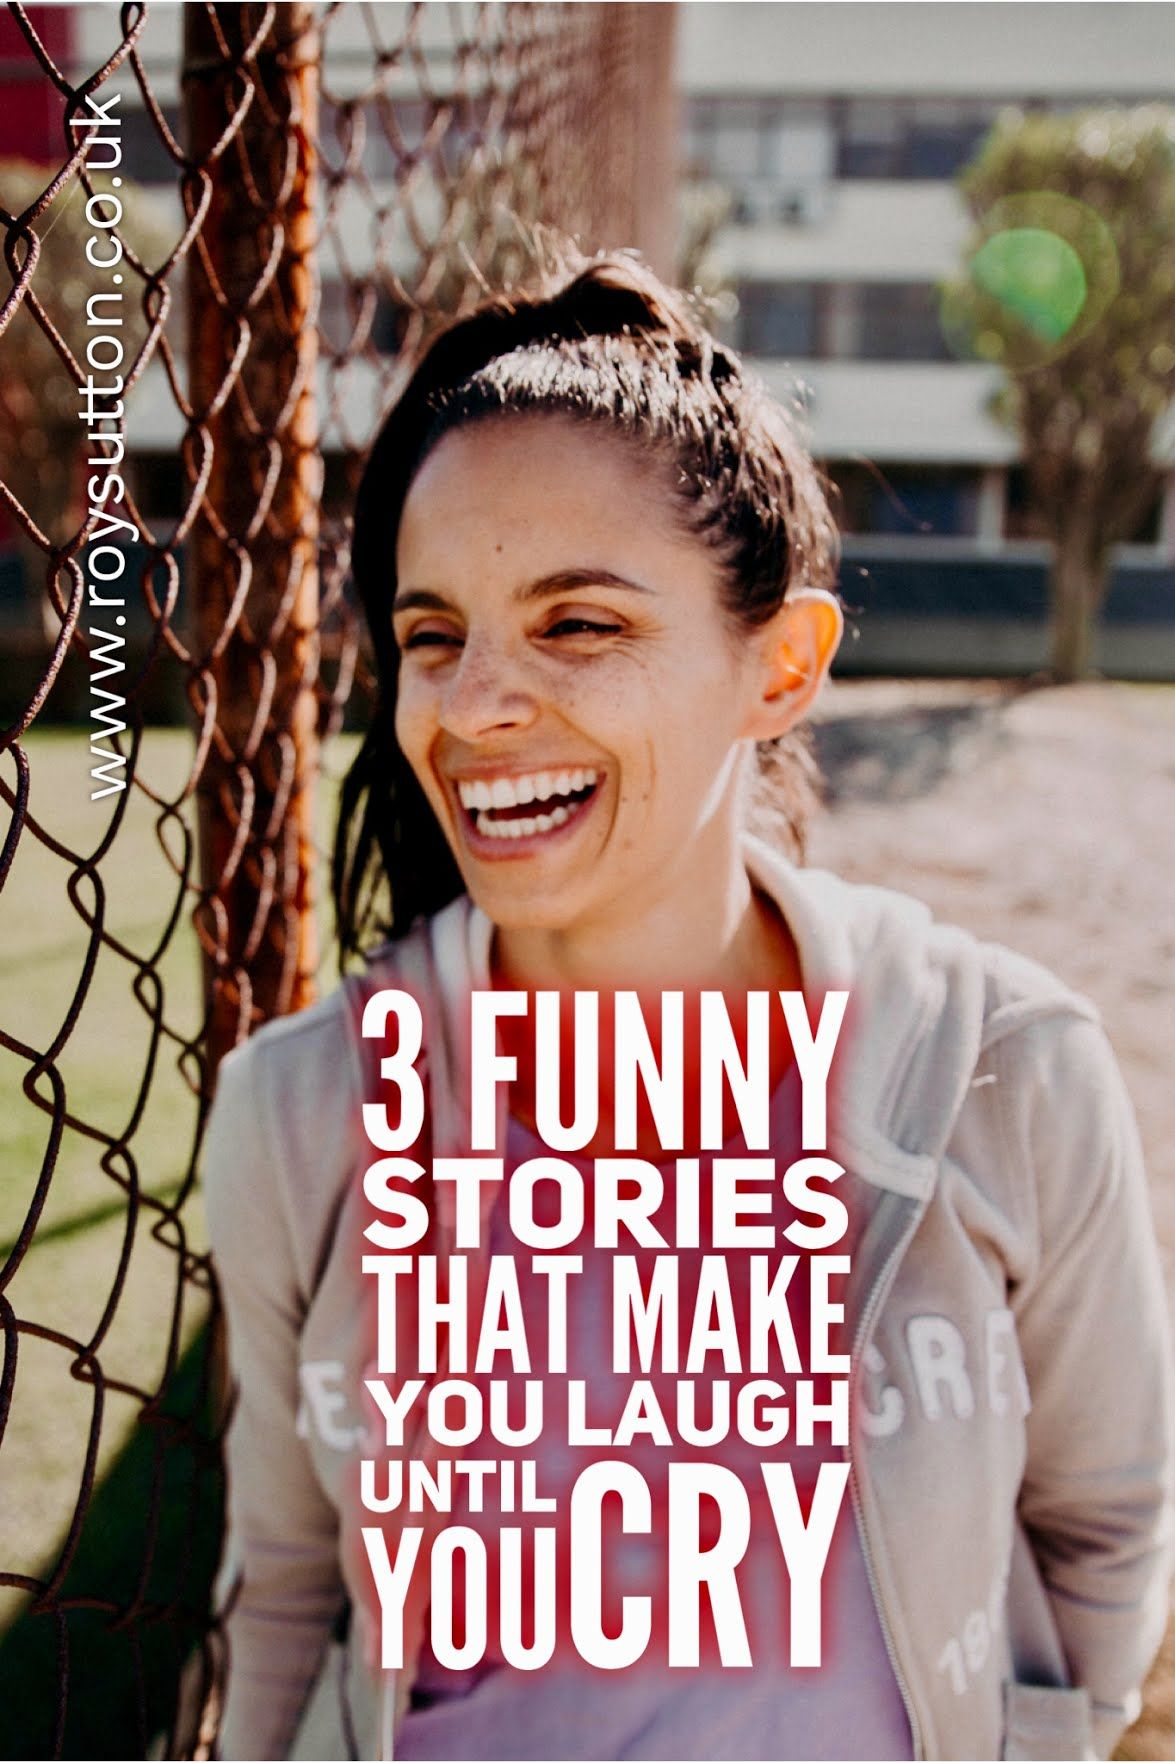 Funny Jokes That Will Make You Laugh Until You Cry : funny, jokes, laugh, until, Funny, Stories, That'll, Laugh, Until, Sutton, Stories,, Laugh,